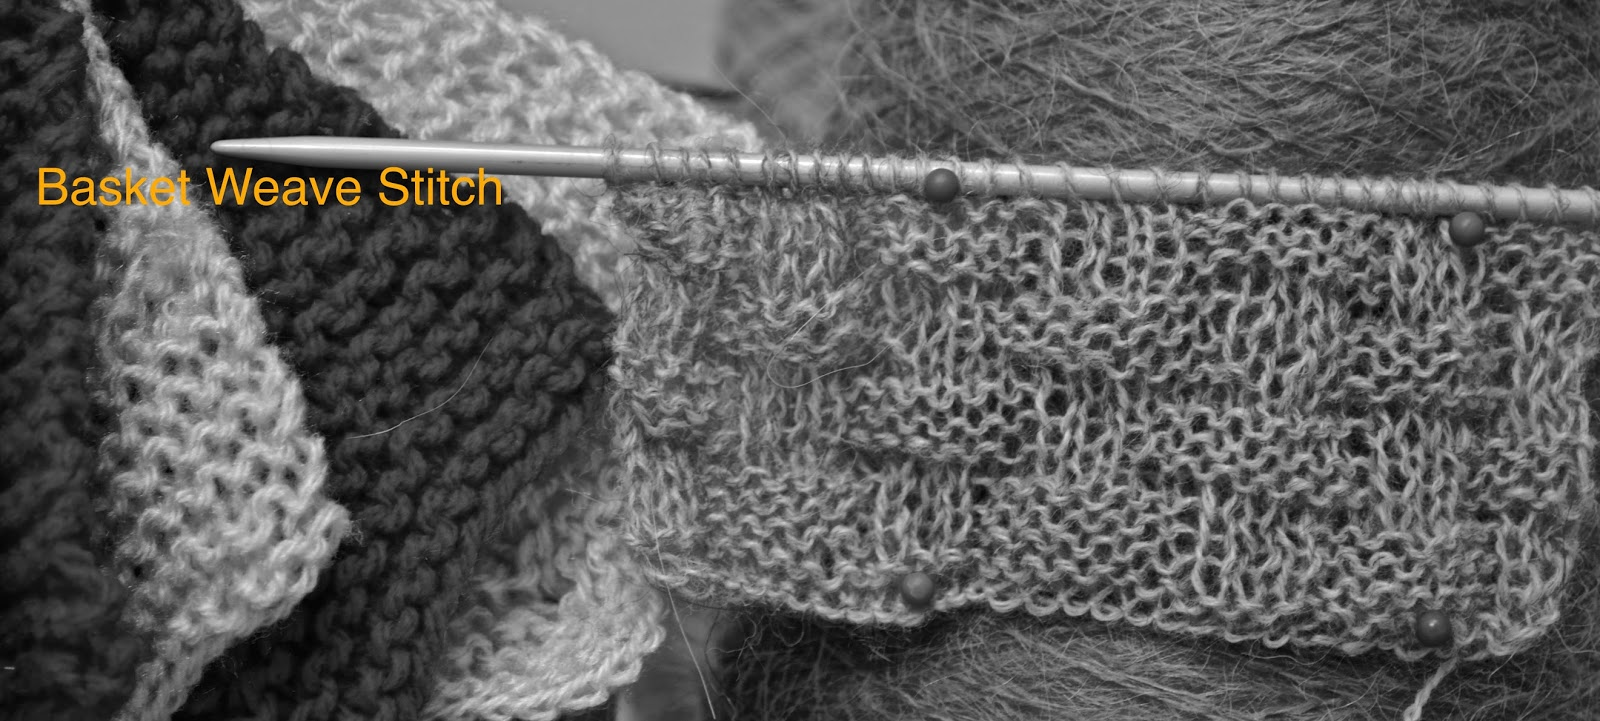 Knitting Novice: The Weekly Swatch: The Basket Weave Stitch